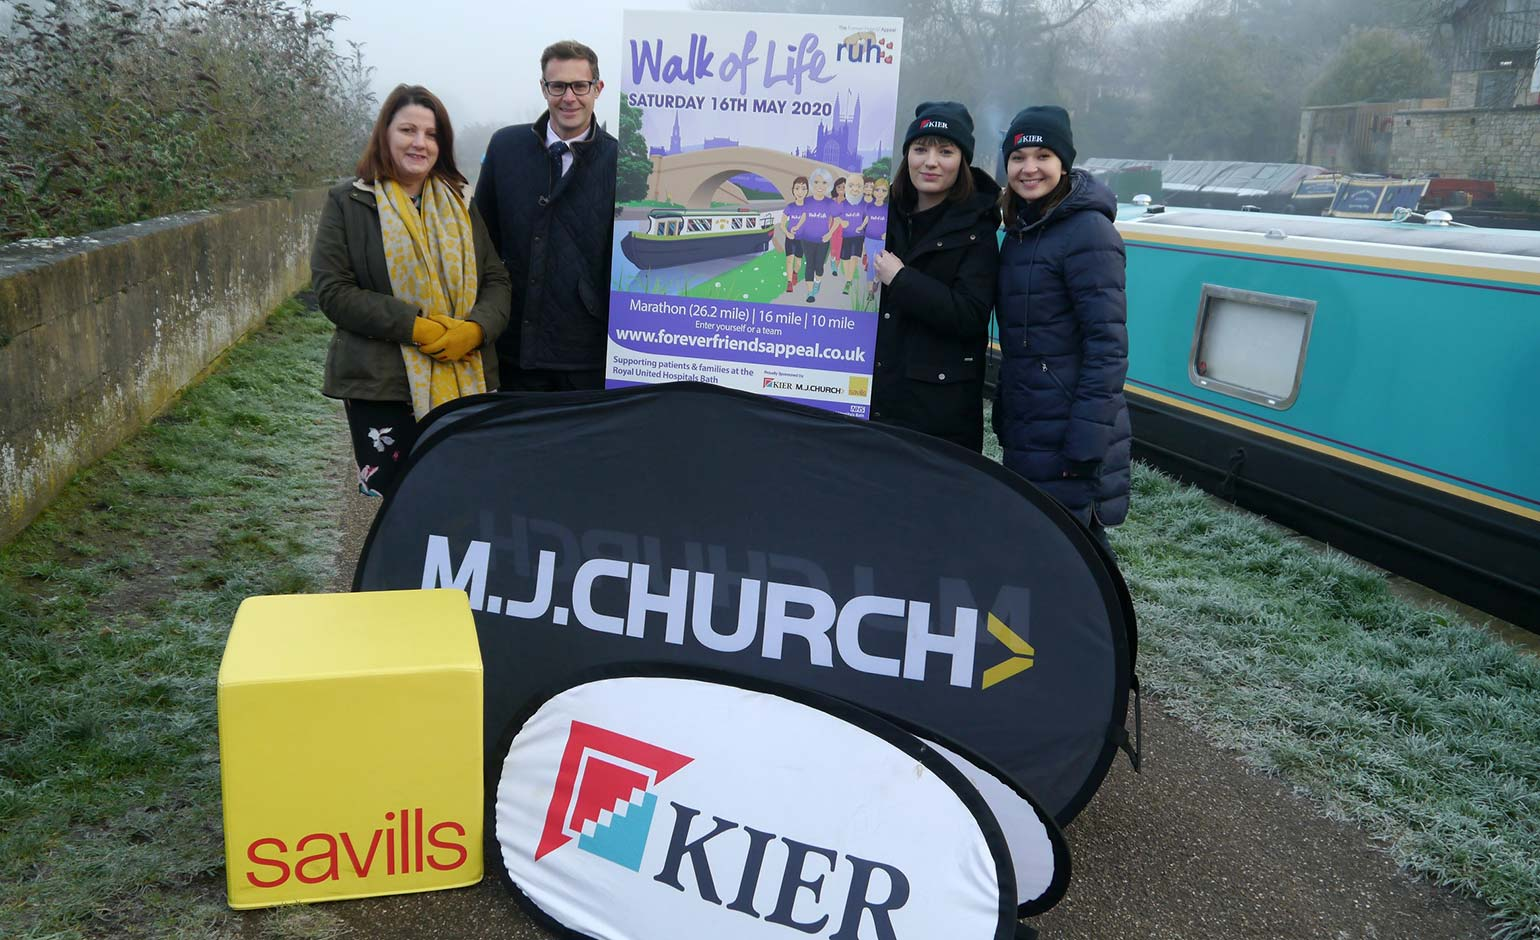 Local businesses to sponsor The Forever Friends Appeal's Walk of Life event